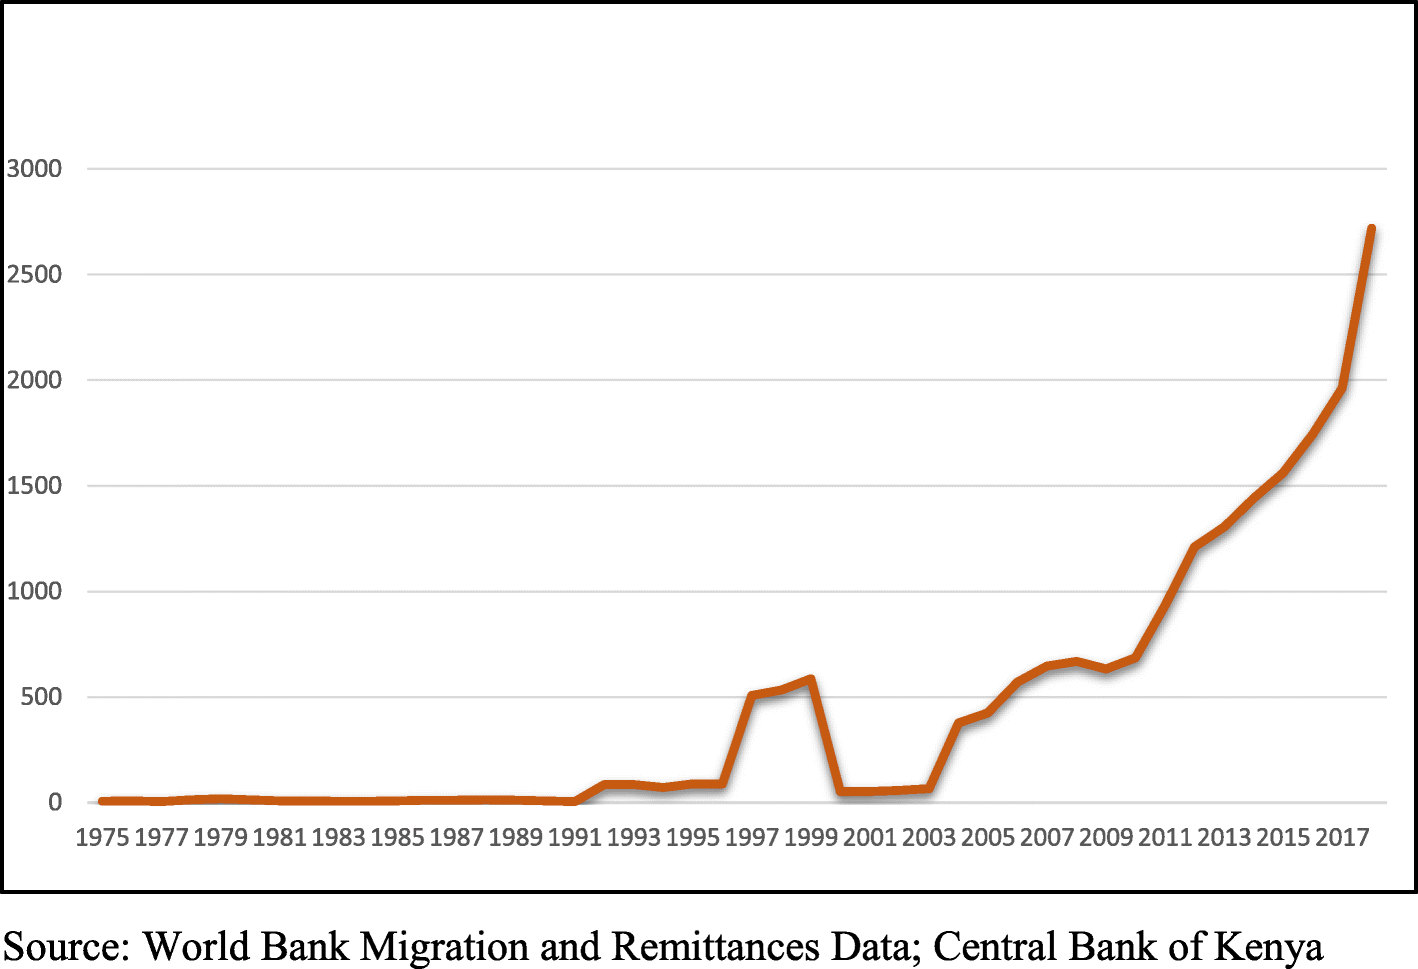 Do migrant remittances matter for financial development in